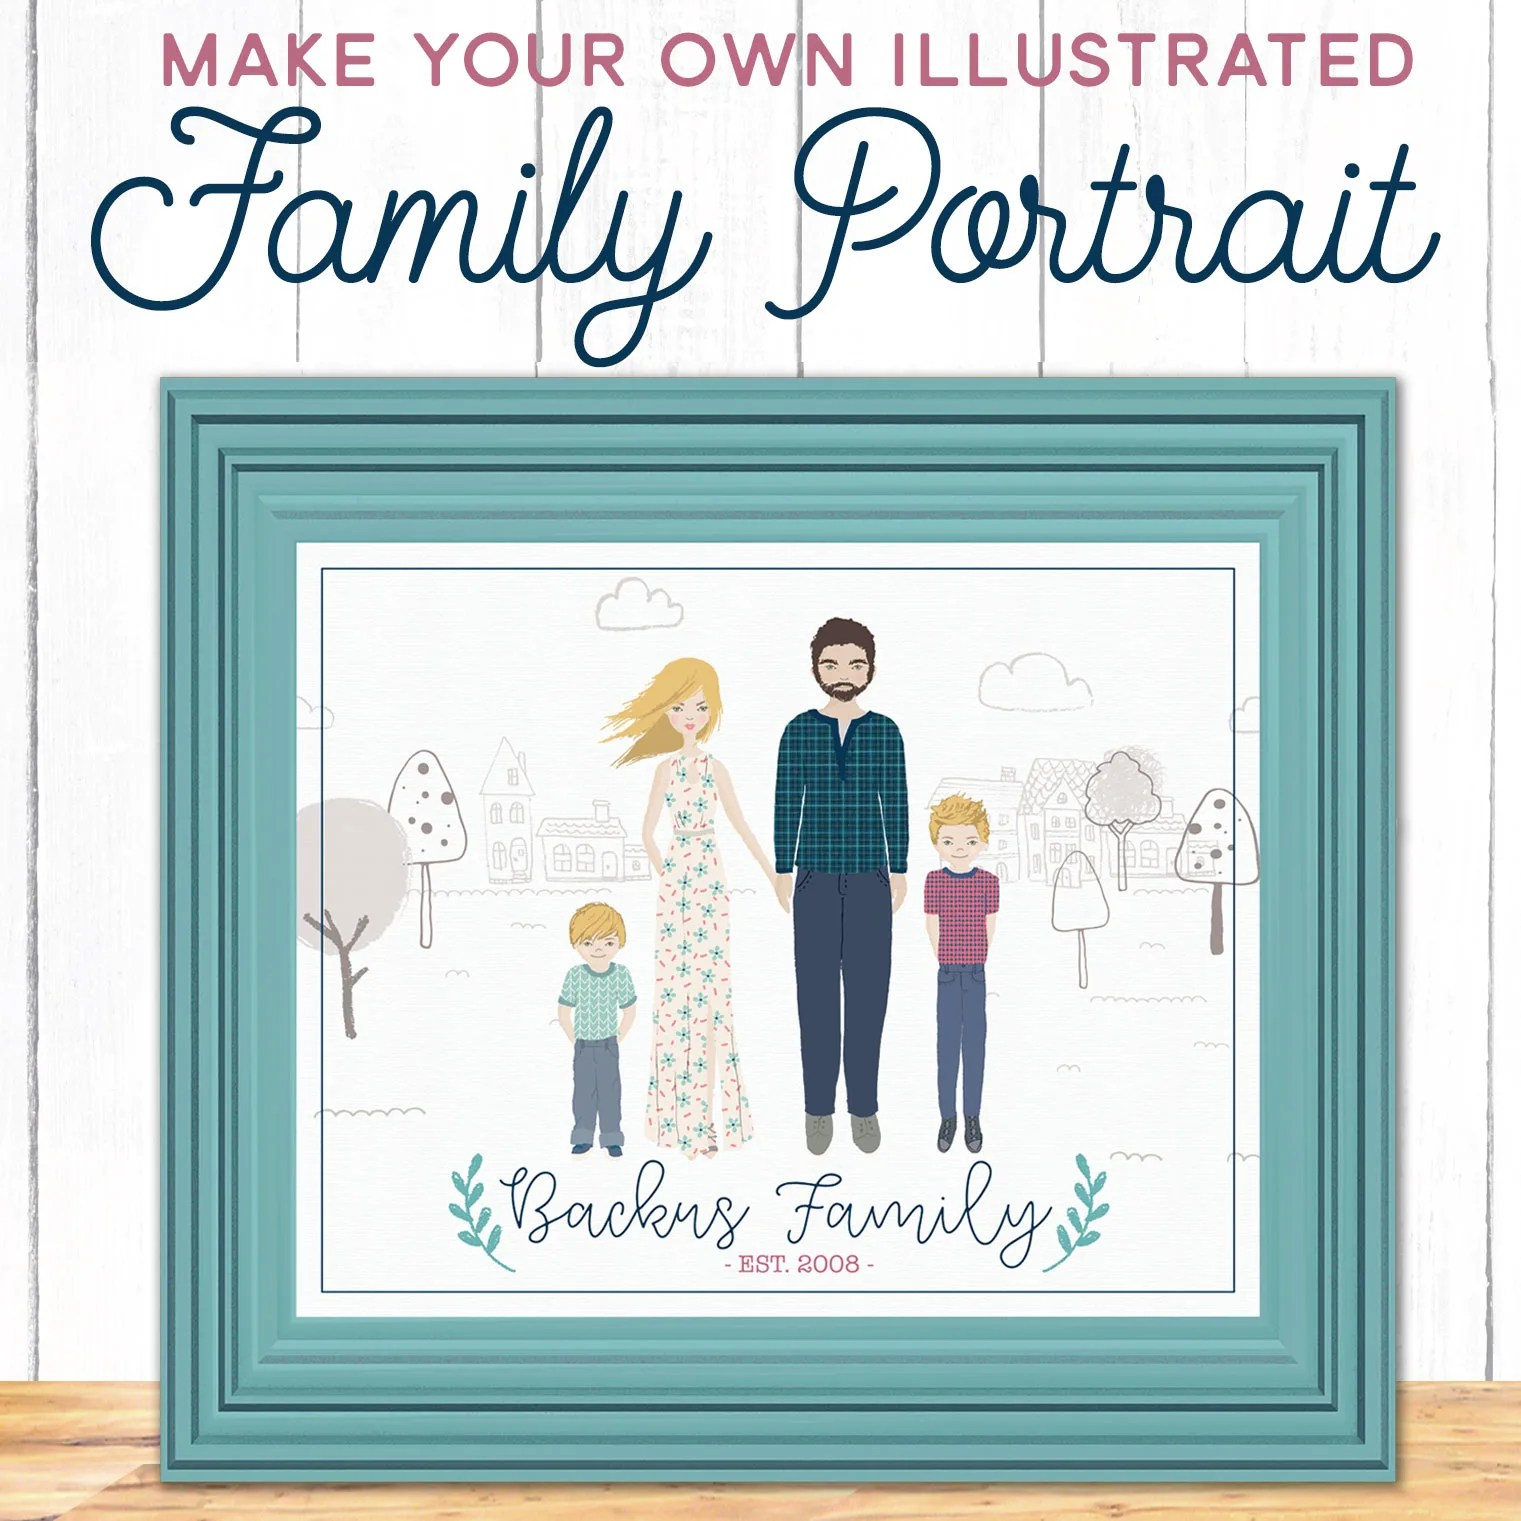 Cartoon Family Portrait Maker Free Familyscopes